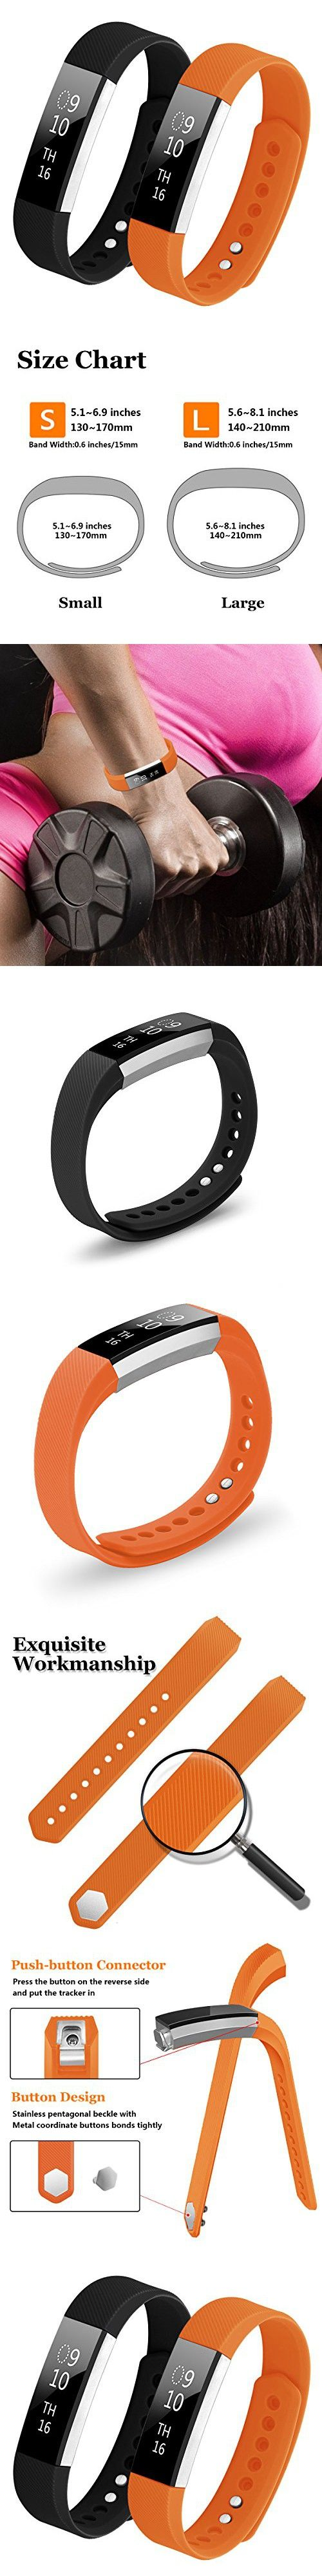 Bepack Band for Fitbit Alta/Alta HR, Soft TPU Adjustable Sport Strap Band for Fitbit Alta/Alta hr Smart watch Heart Rate Fitness Wristband (Black+Orange, Small (5.1-6.9 in))